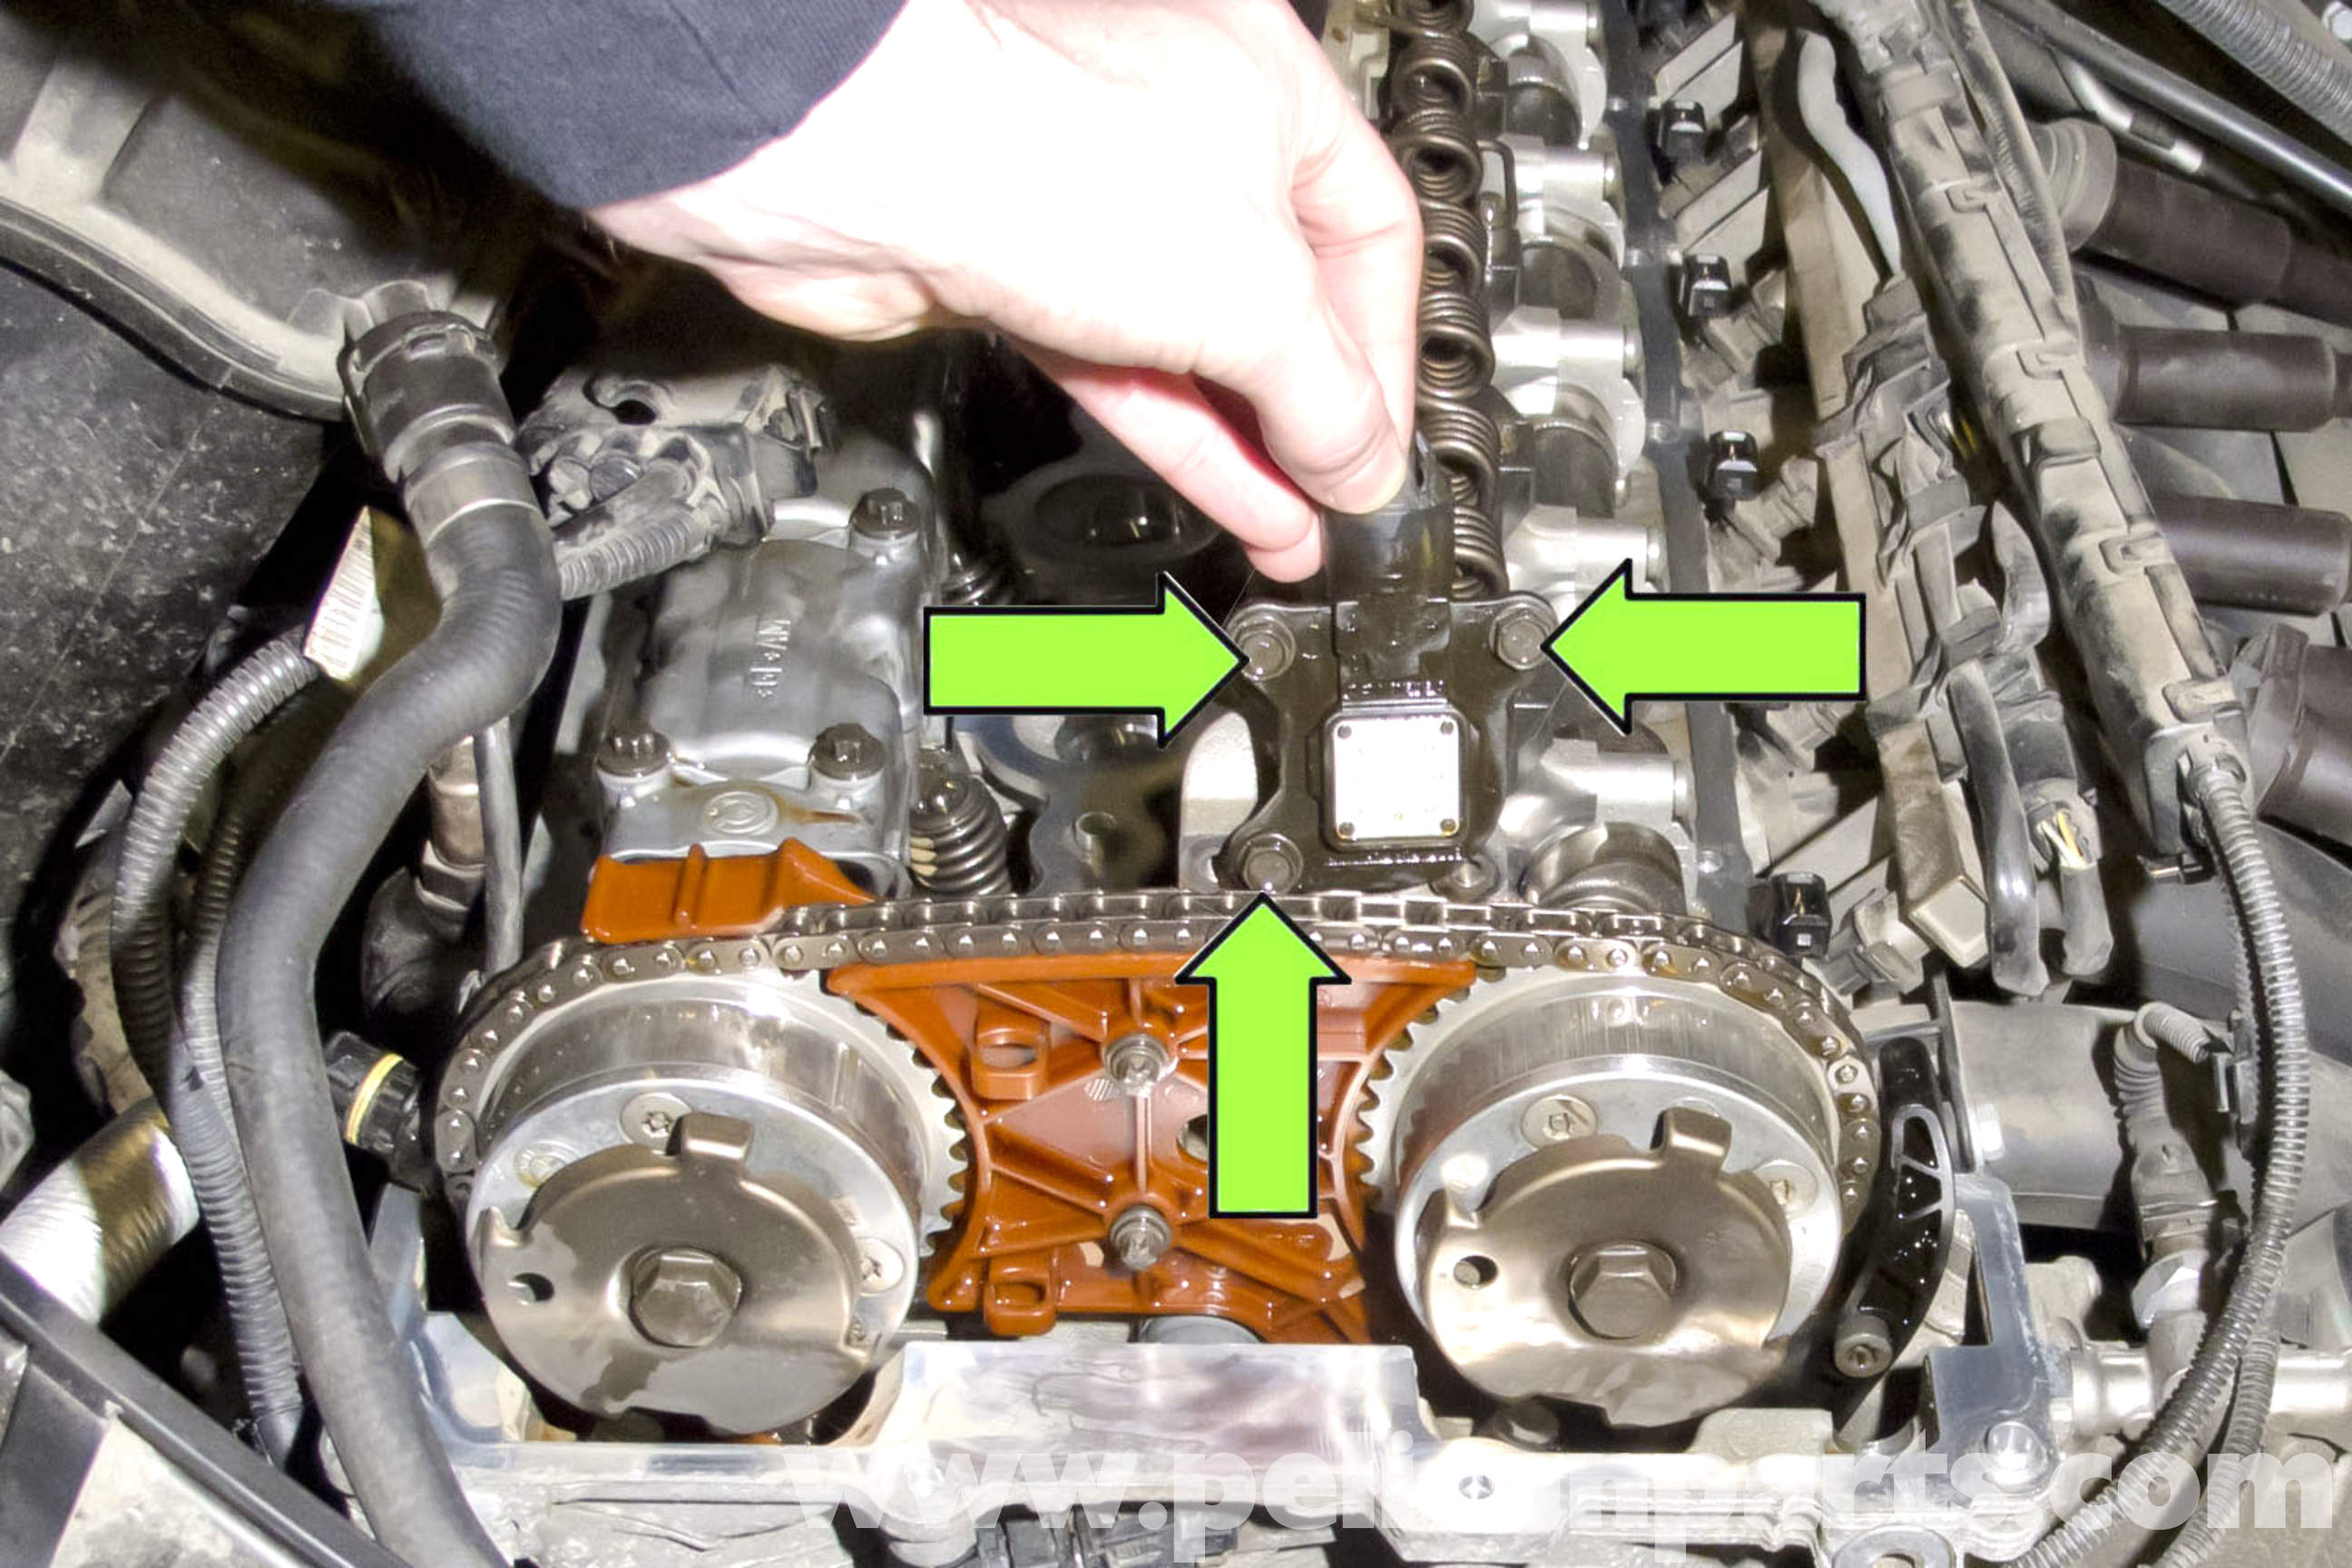 90 Camaro Engine Wiring Diagram Will Be A Thing 2010 Bmw E46 Radiator Free Image For User 1969